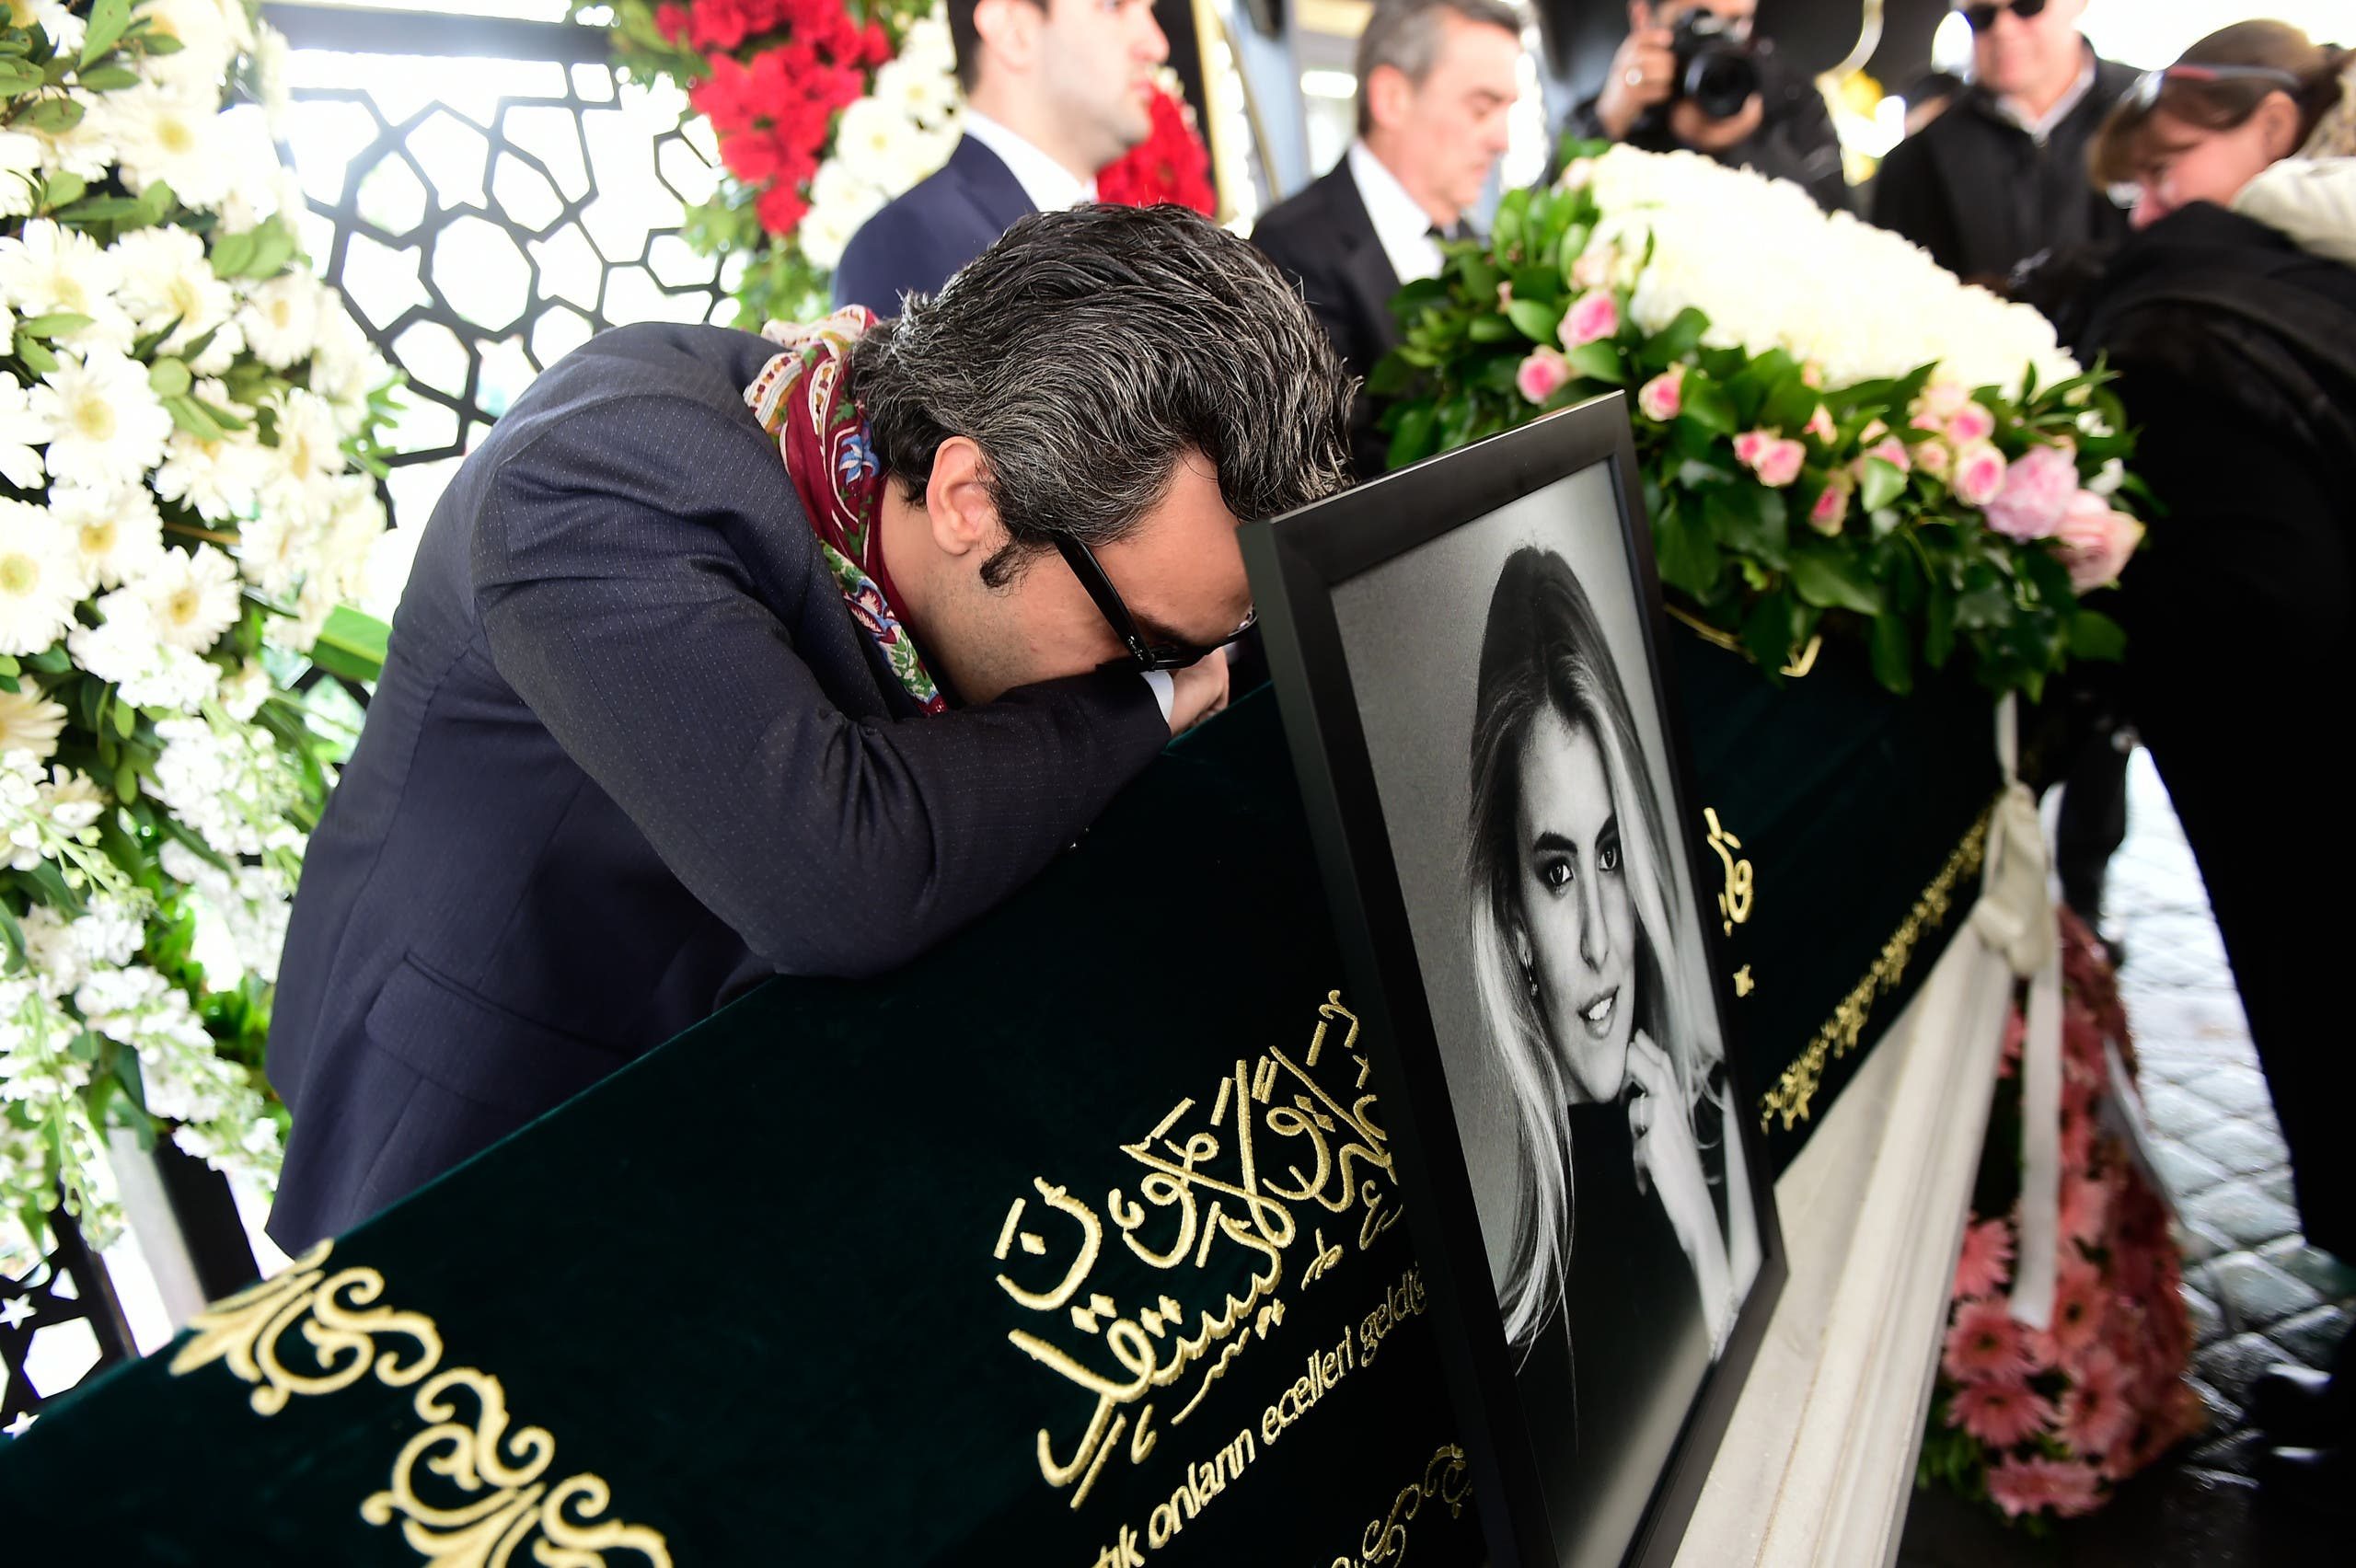 Sinan Urfali (L) husband of Burcu Gundogar Urfali mourns next to his wife's coffin on March 15, 2018 during her funeral cerenomy in Istanbul. Grieving families bade farewell to the young women killed in a plane crash over Iran while returning from a pre-wedding celebration for a Turkish businessman's daughter, in a tragedy that shocked the country. YASIN AKGUL / AFP